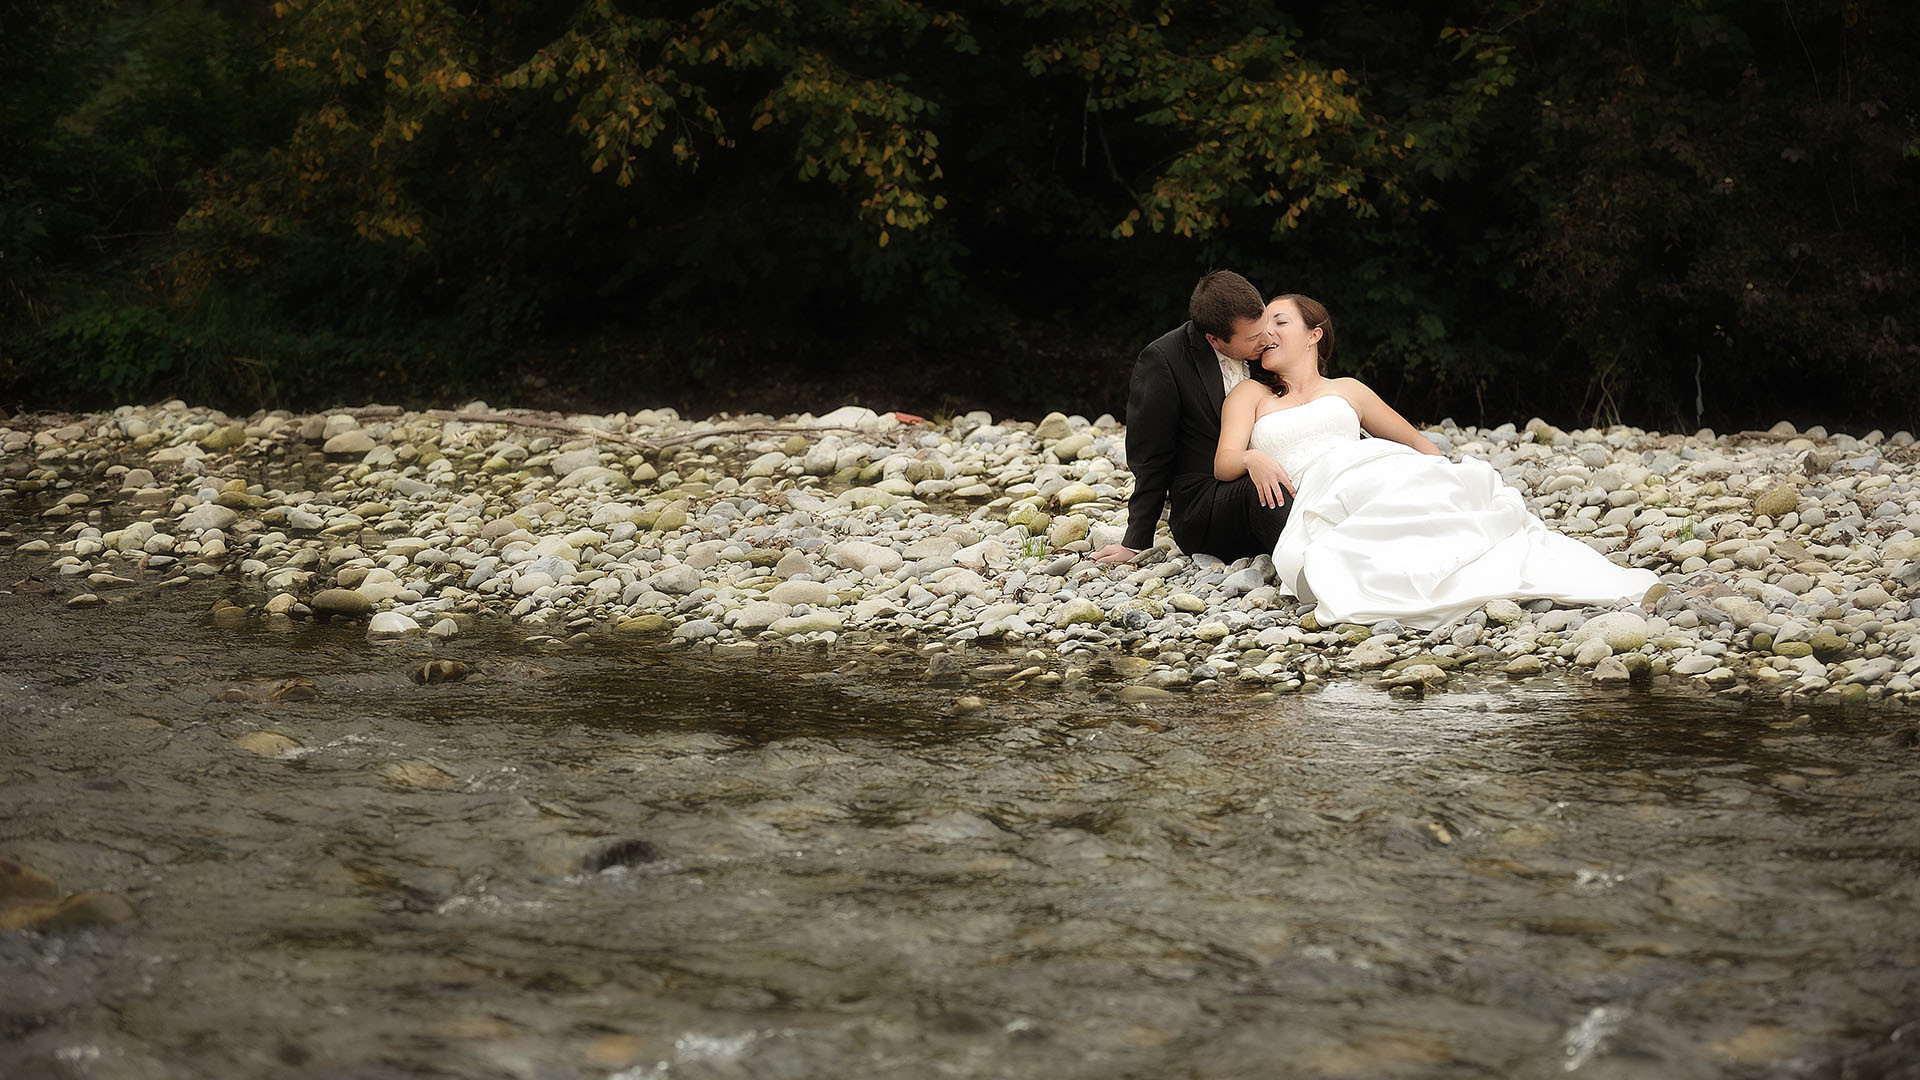 Trash-The-Dress am Wasser im Aargau